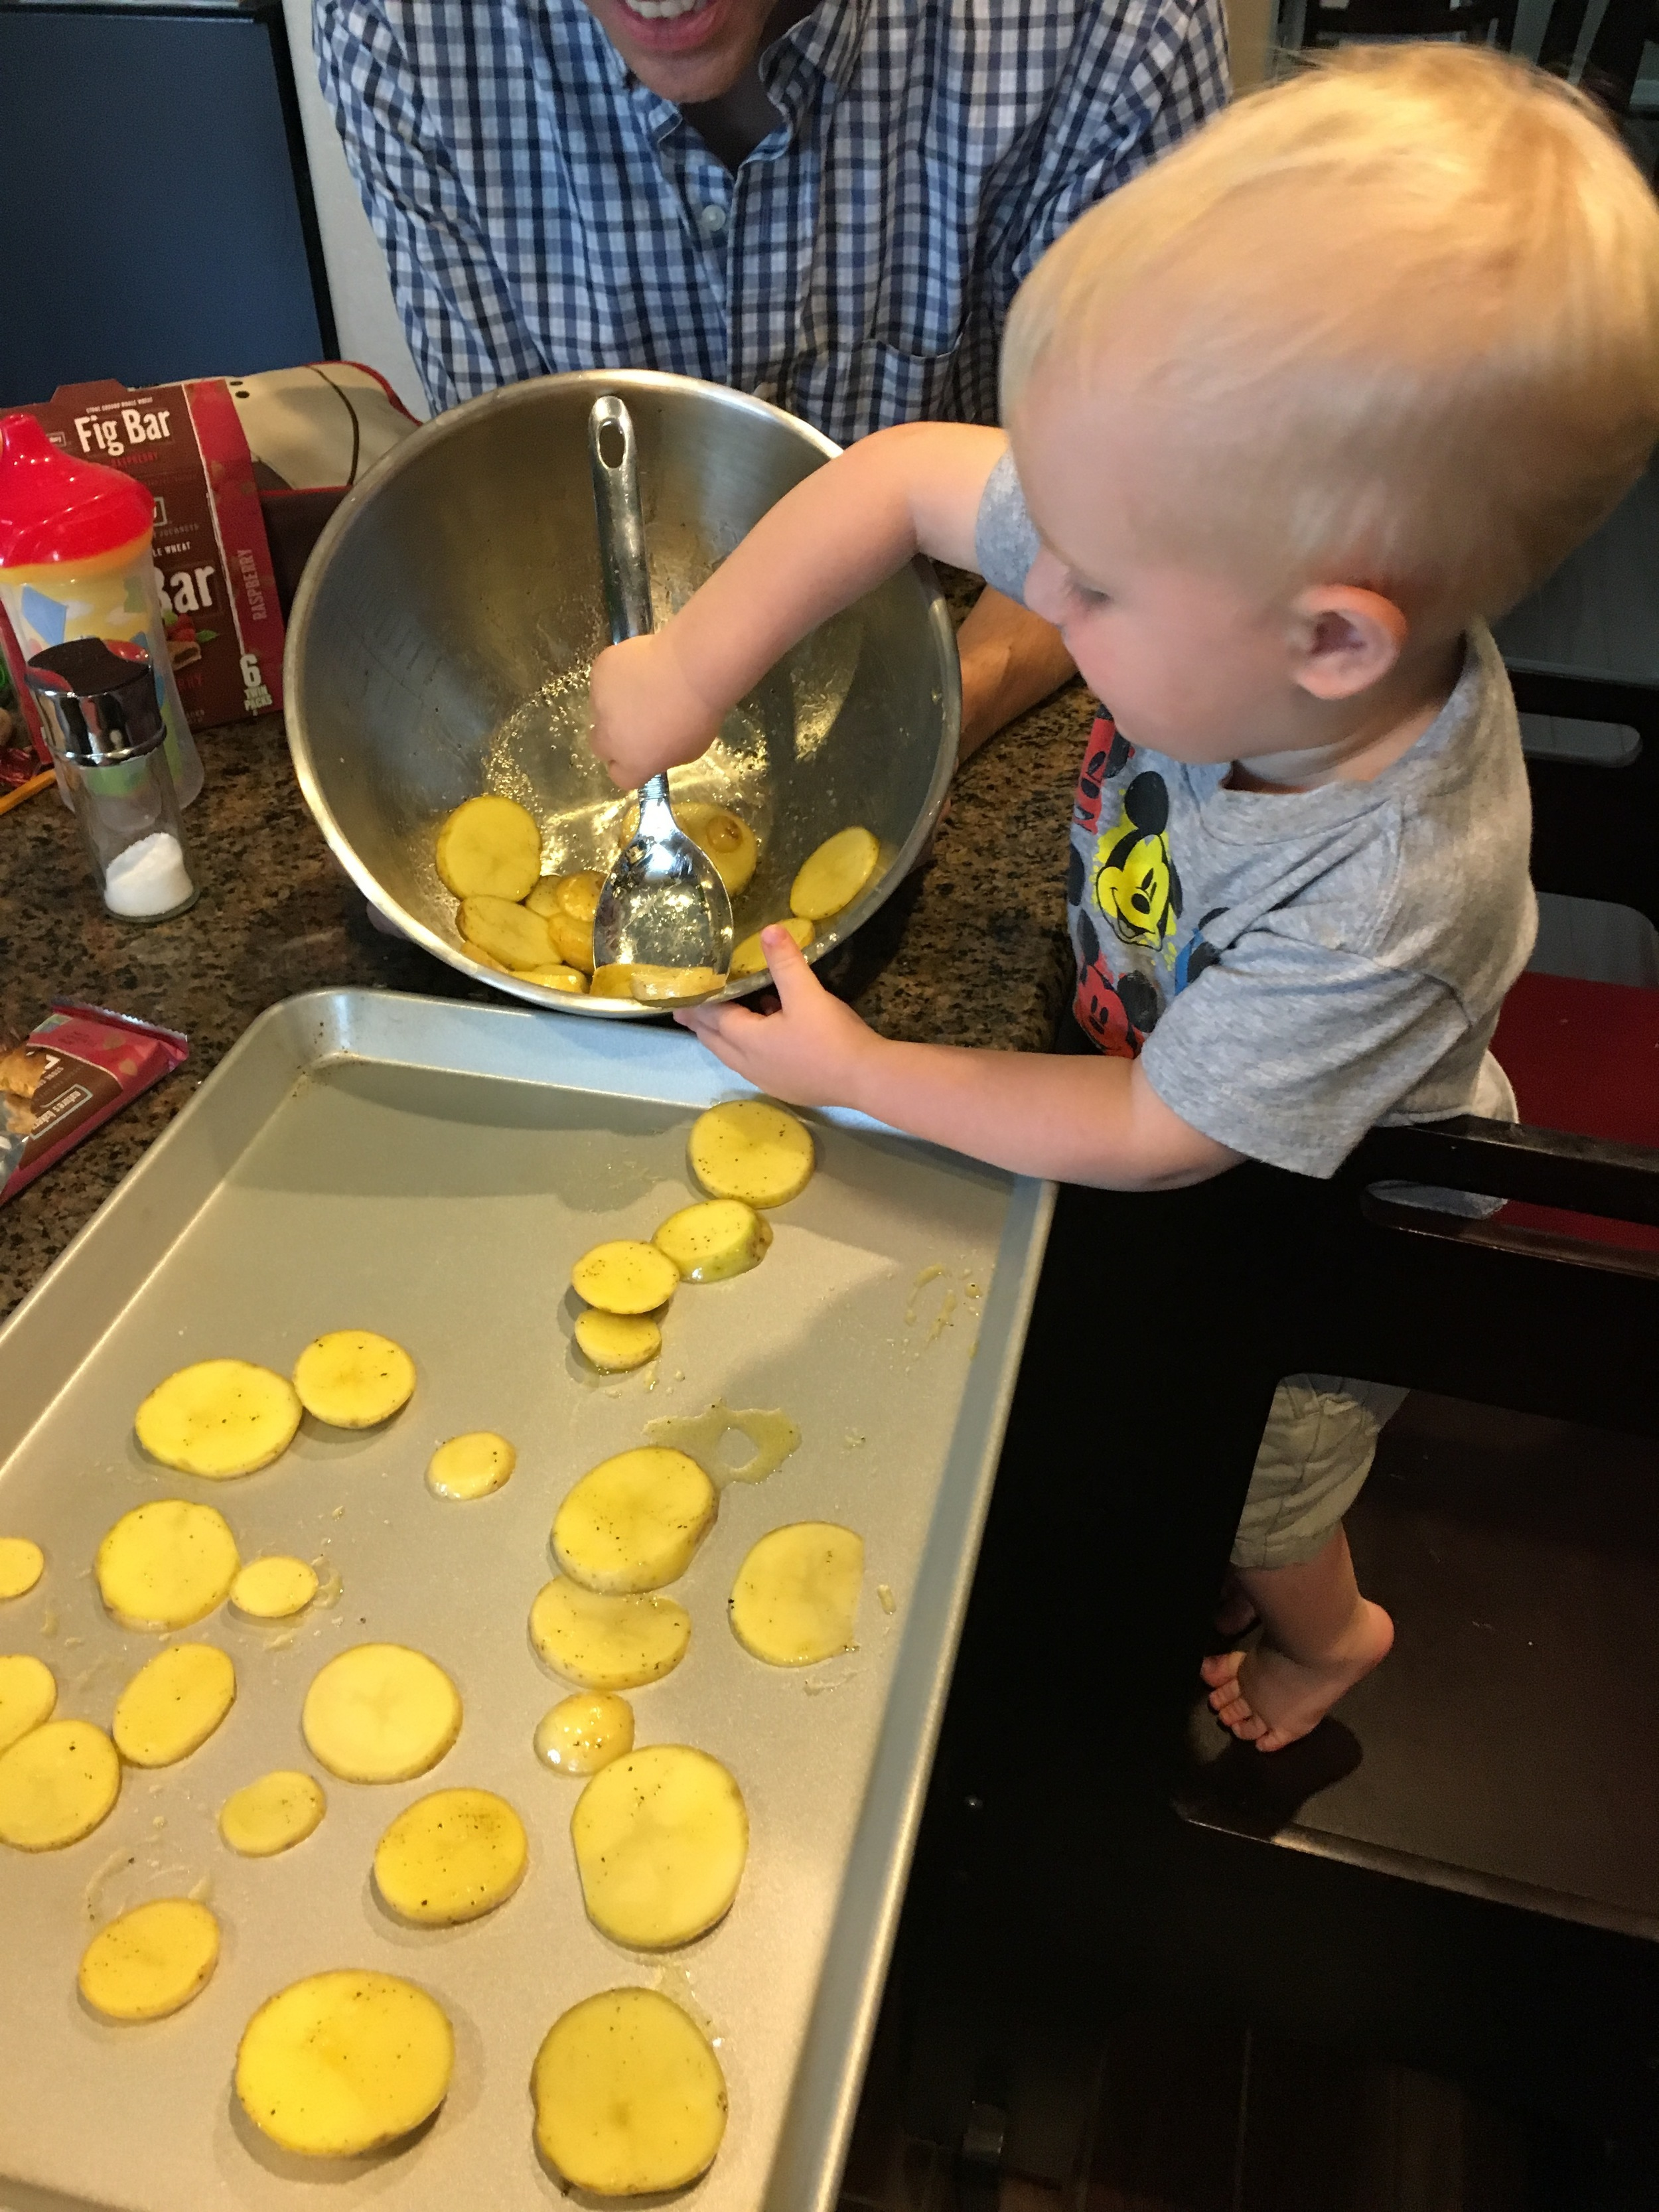 Once the kiddo started trying to spoon the potatoes onto the baking sheet, we decided to give him a little assistance.